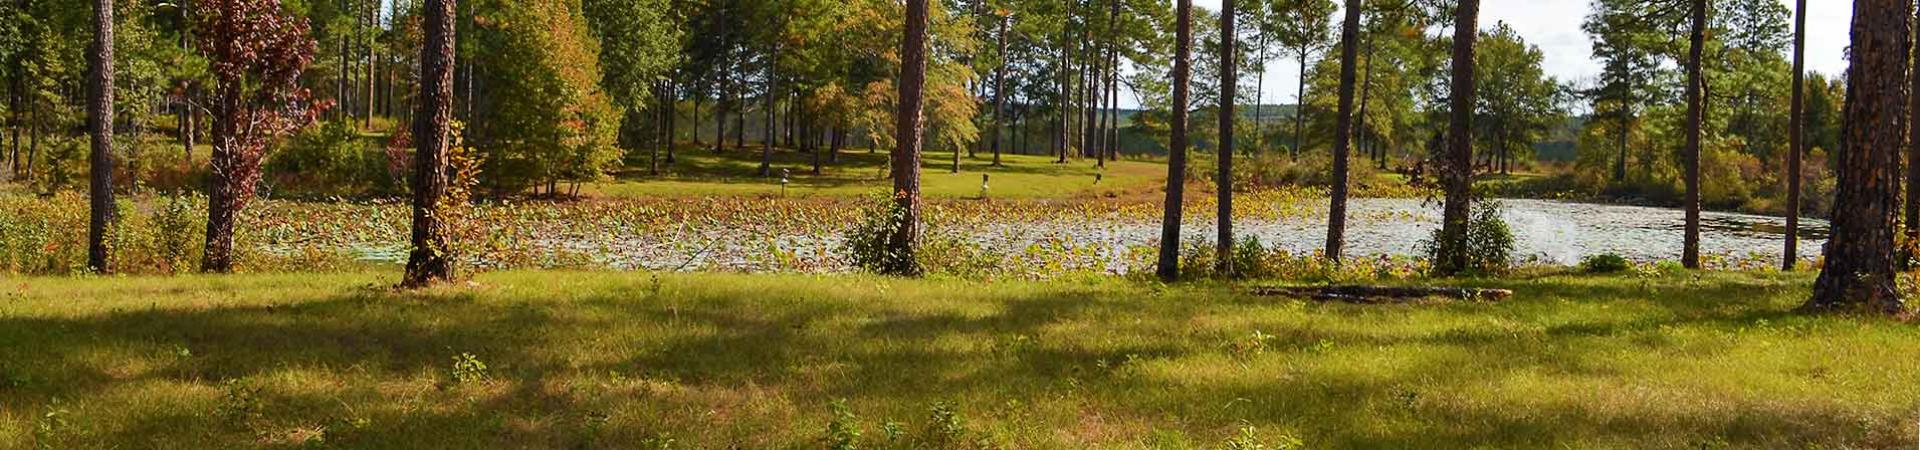 camping area and pond at Ocmulgee Wildlife Management Area